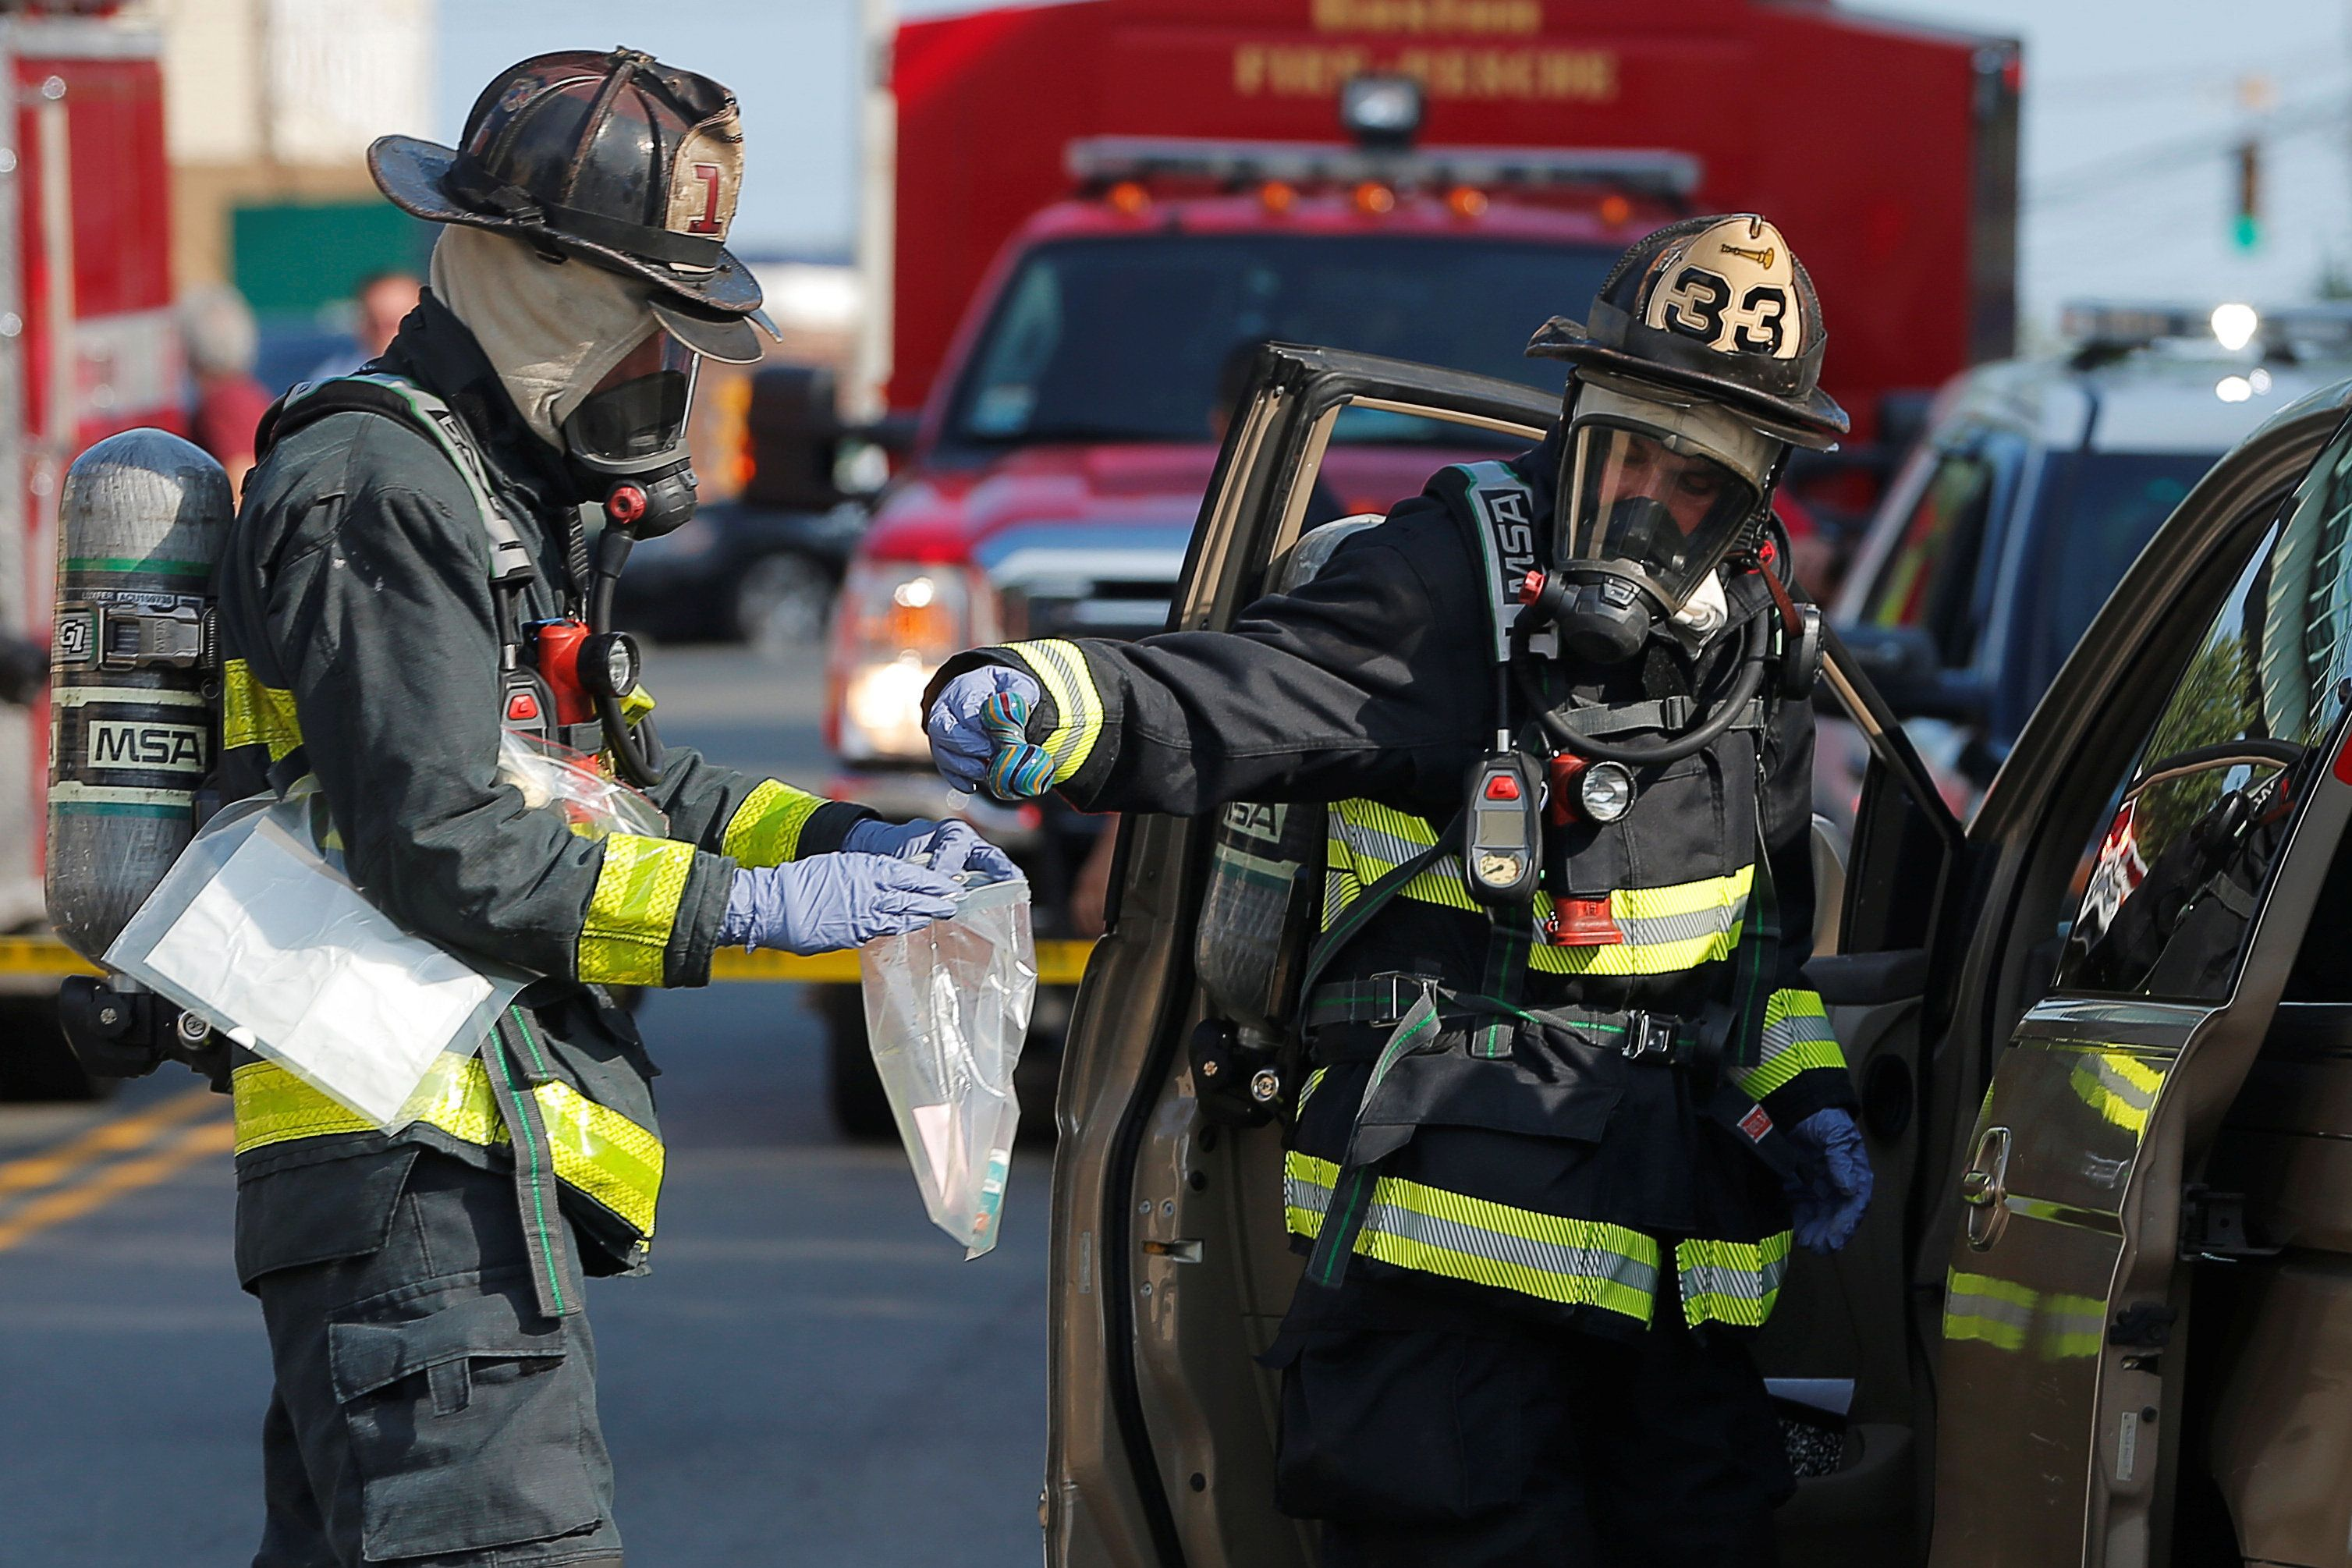 Firefighters in hazmat protection remove items from a vehicle in which several drug overdose victims were found, in addition to a powder believed to be fentanyl, in Chelsea, Massachusetts, U.S., August 4, 2017. REUTERS/Brian Snyder